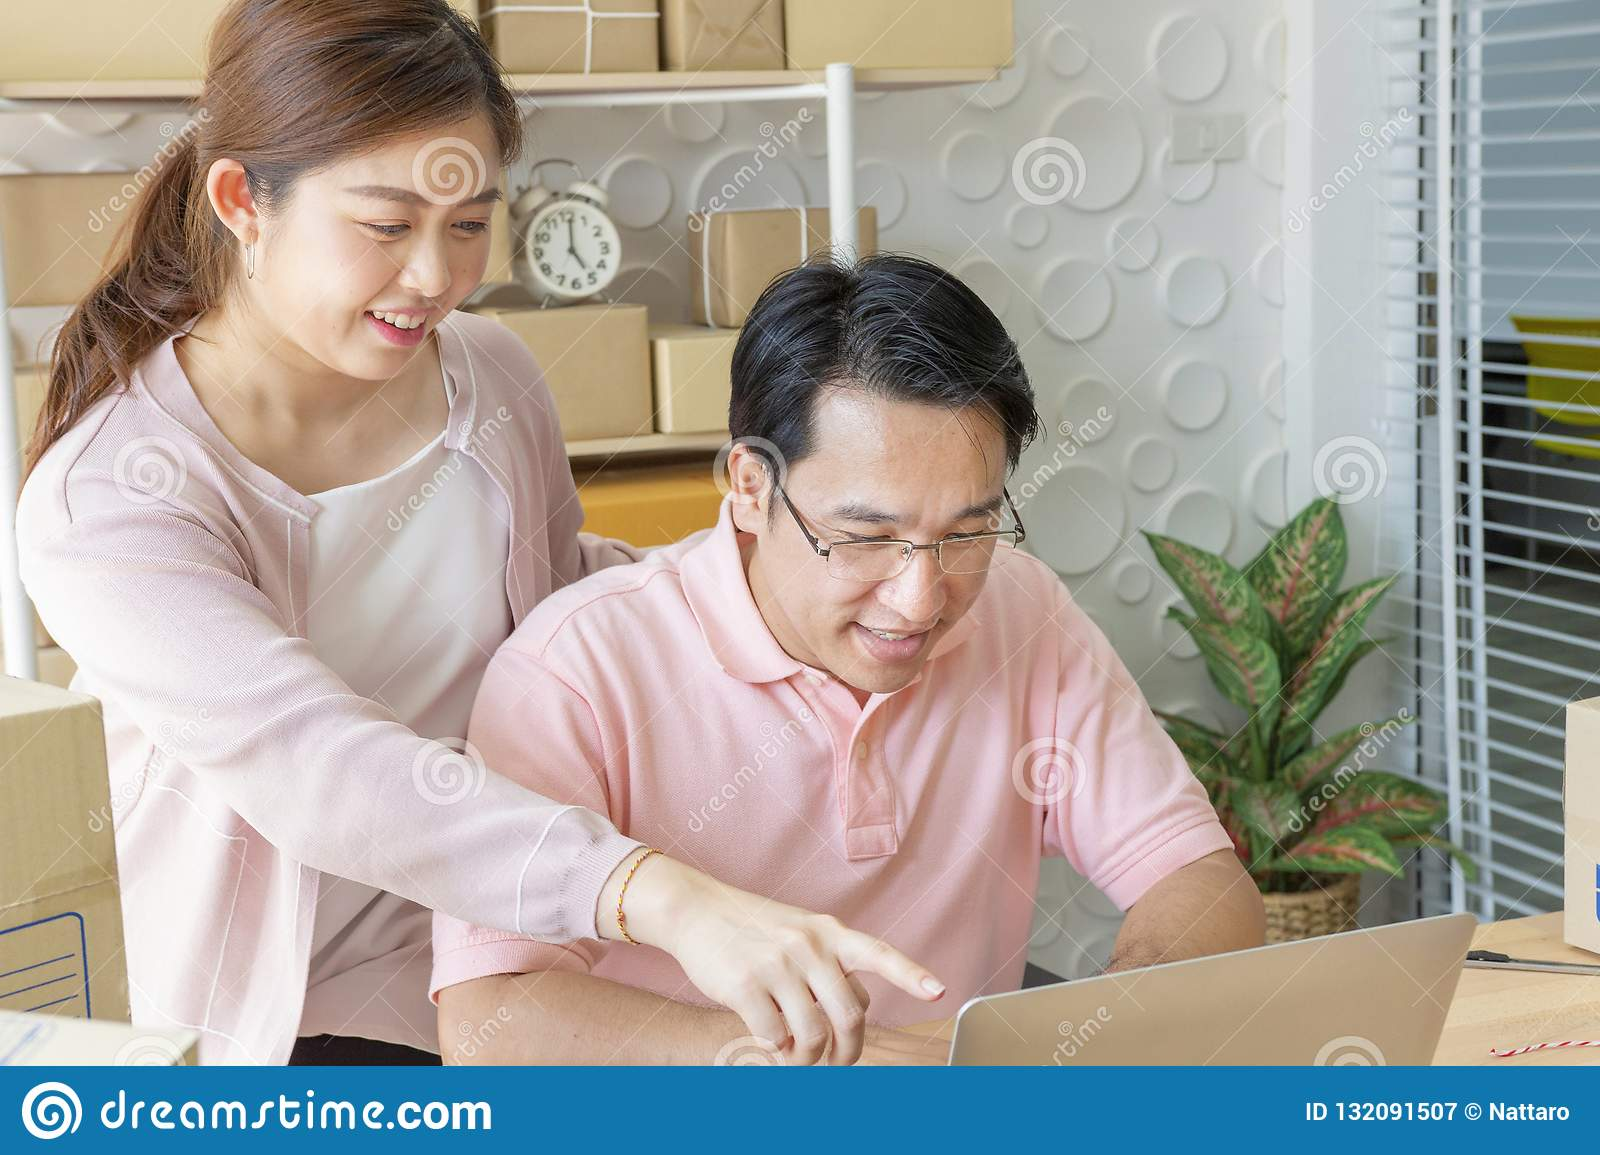 Couple using laptop at home. Pointing at screen with happily